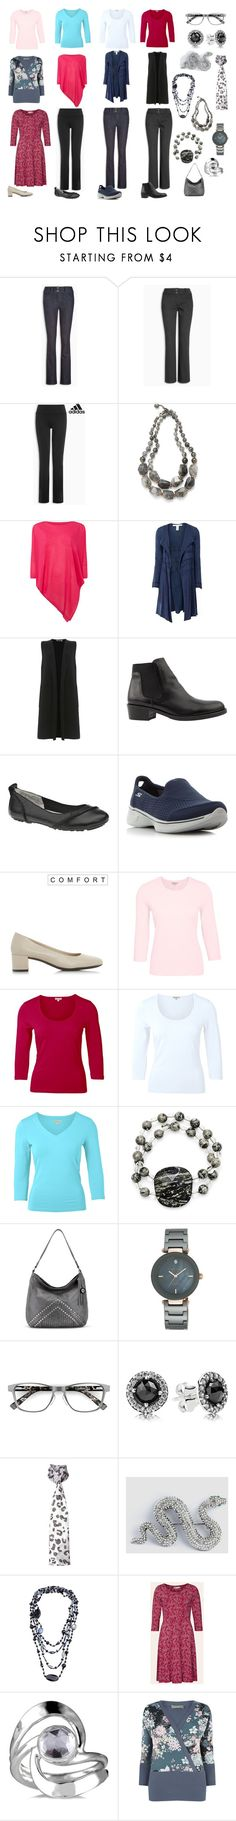 """""""W Q july 17"""" by missiatti ❤ liked on Polyvore featuring adidas, Lola Rose, Phase Eight, Max Studio, Mint Velvet, Hush Puppies, Skechers and Anne Klein"""